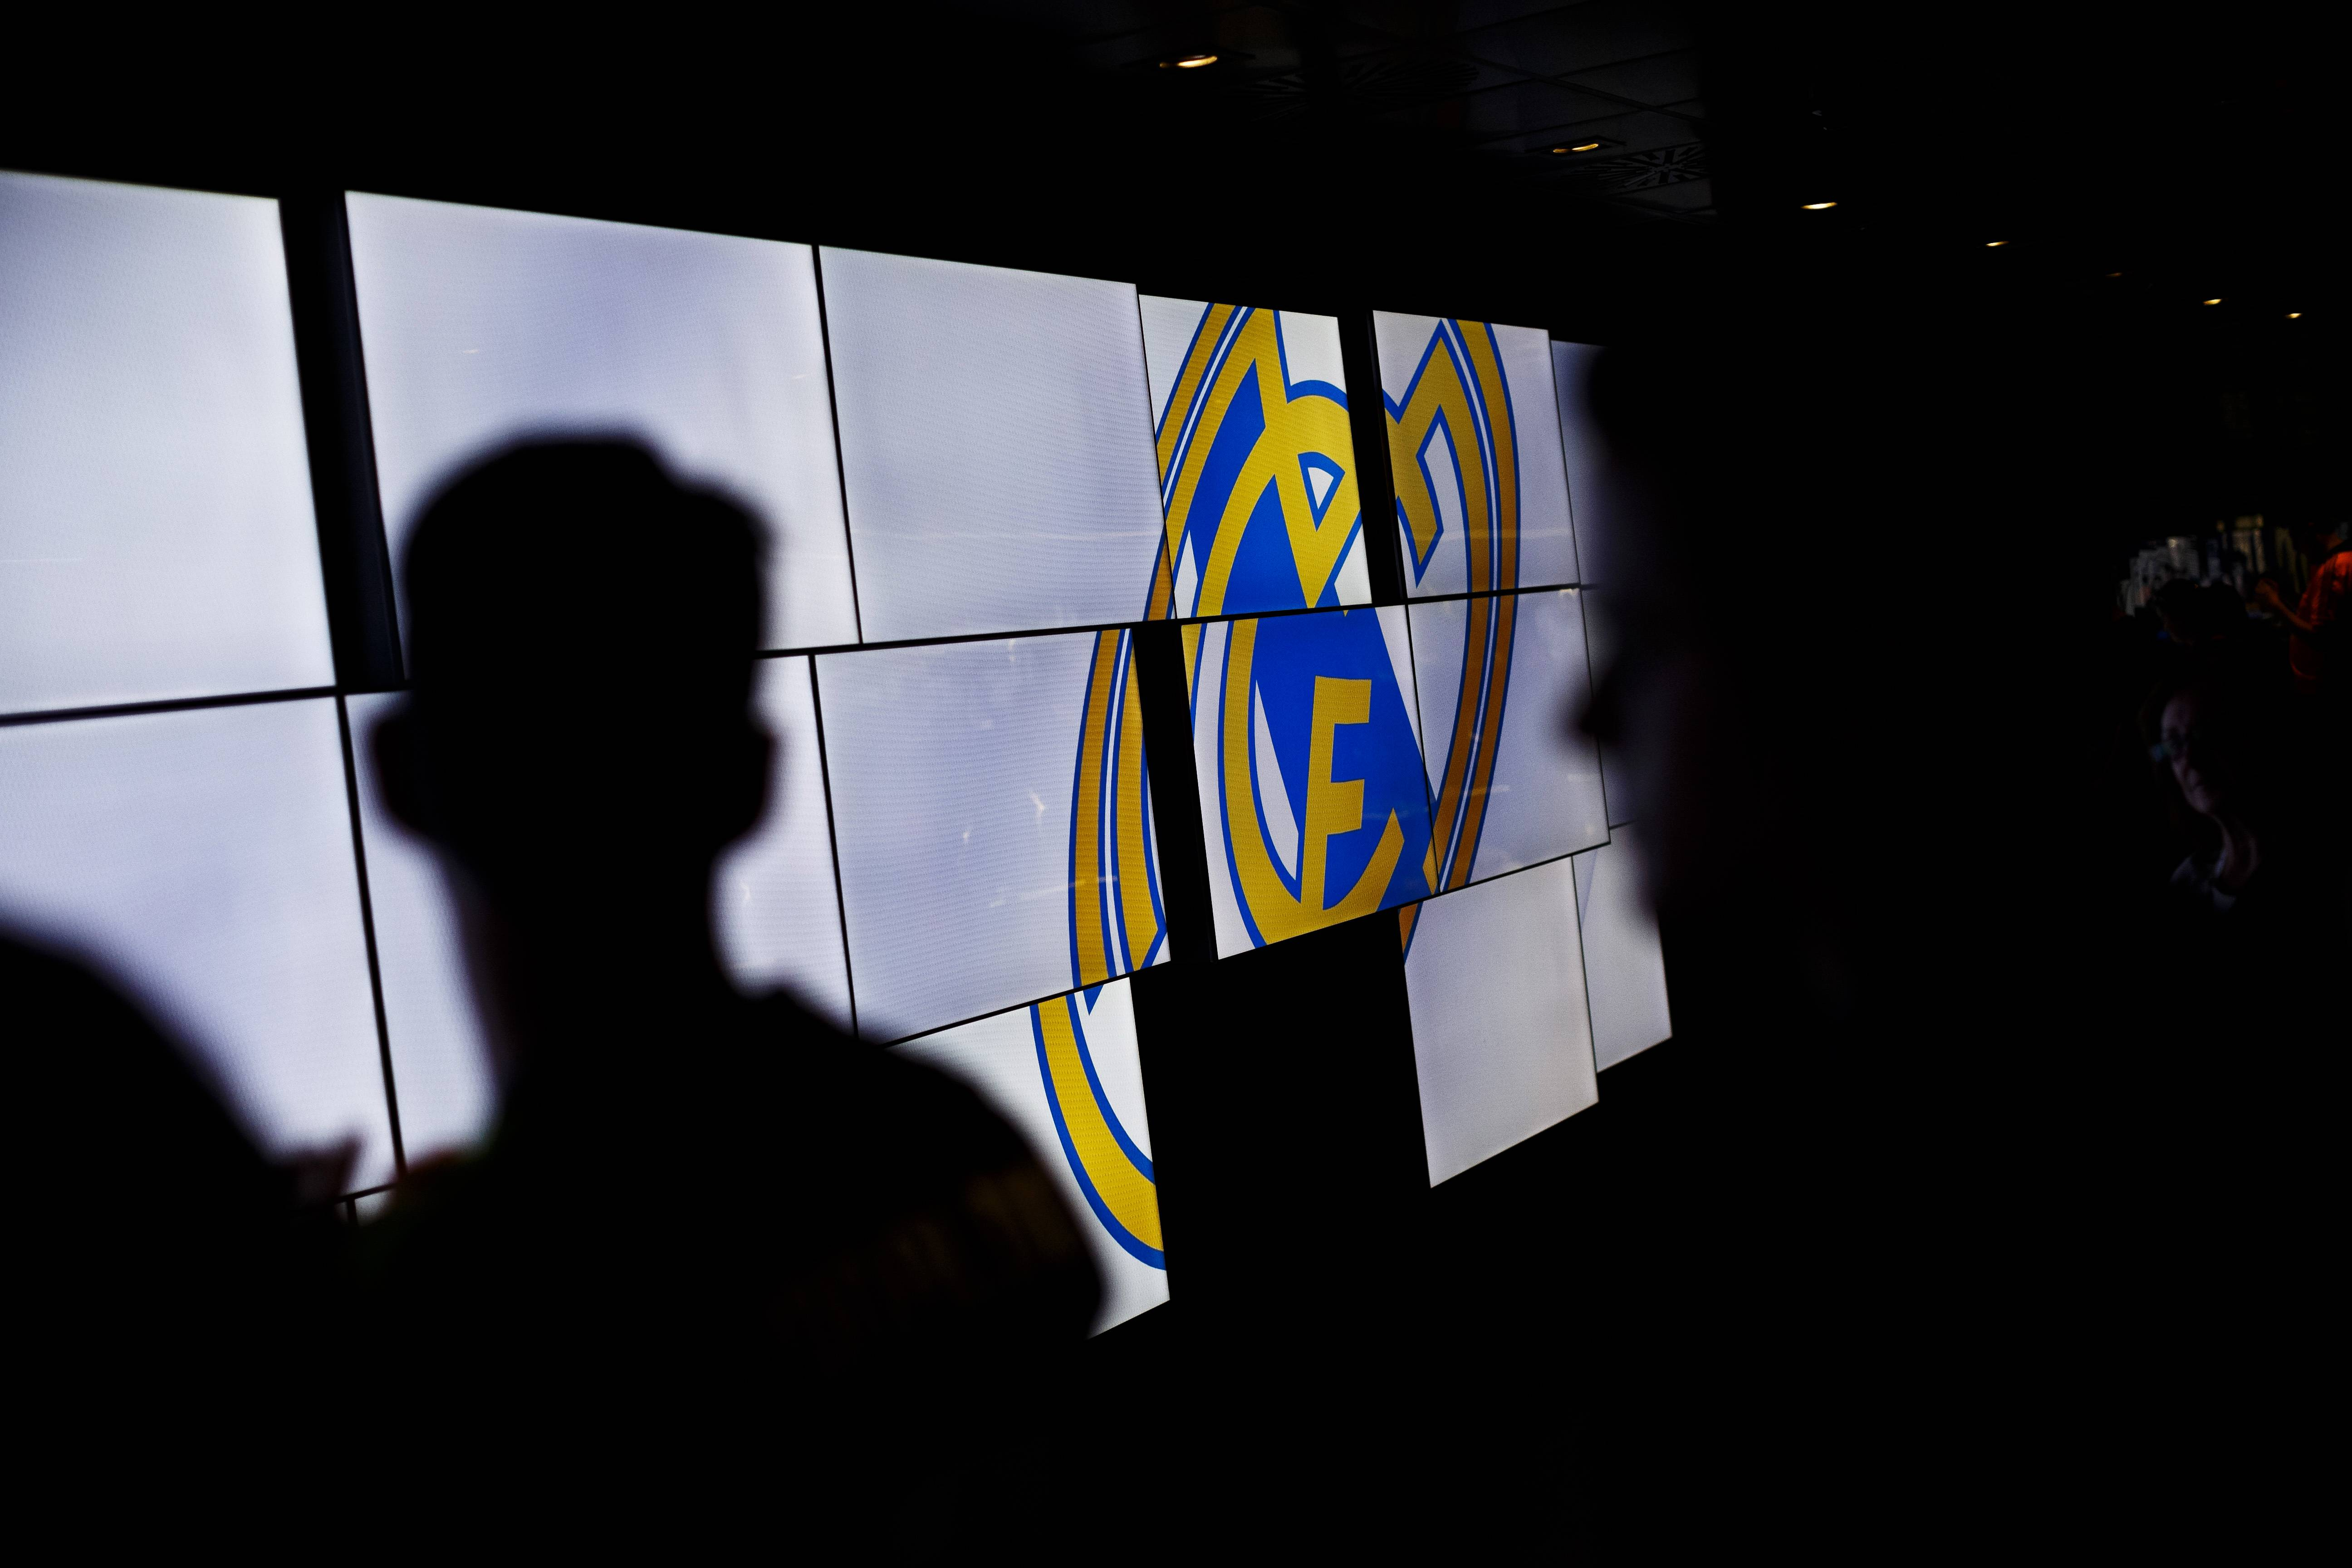 Real Madrid's supporters are backlighted by screens displaying the Real Madrid team emblem on the trophies gallery of the Santiago Bernabeu stadium in Madrid, Spain. The European Union is investigating whether government loan guarantees for seven soccer clubs violate EU competition law.